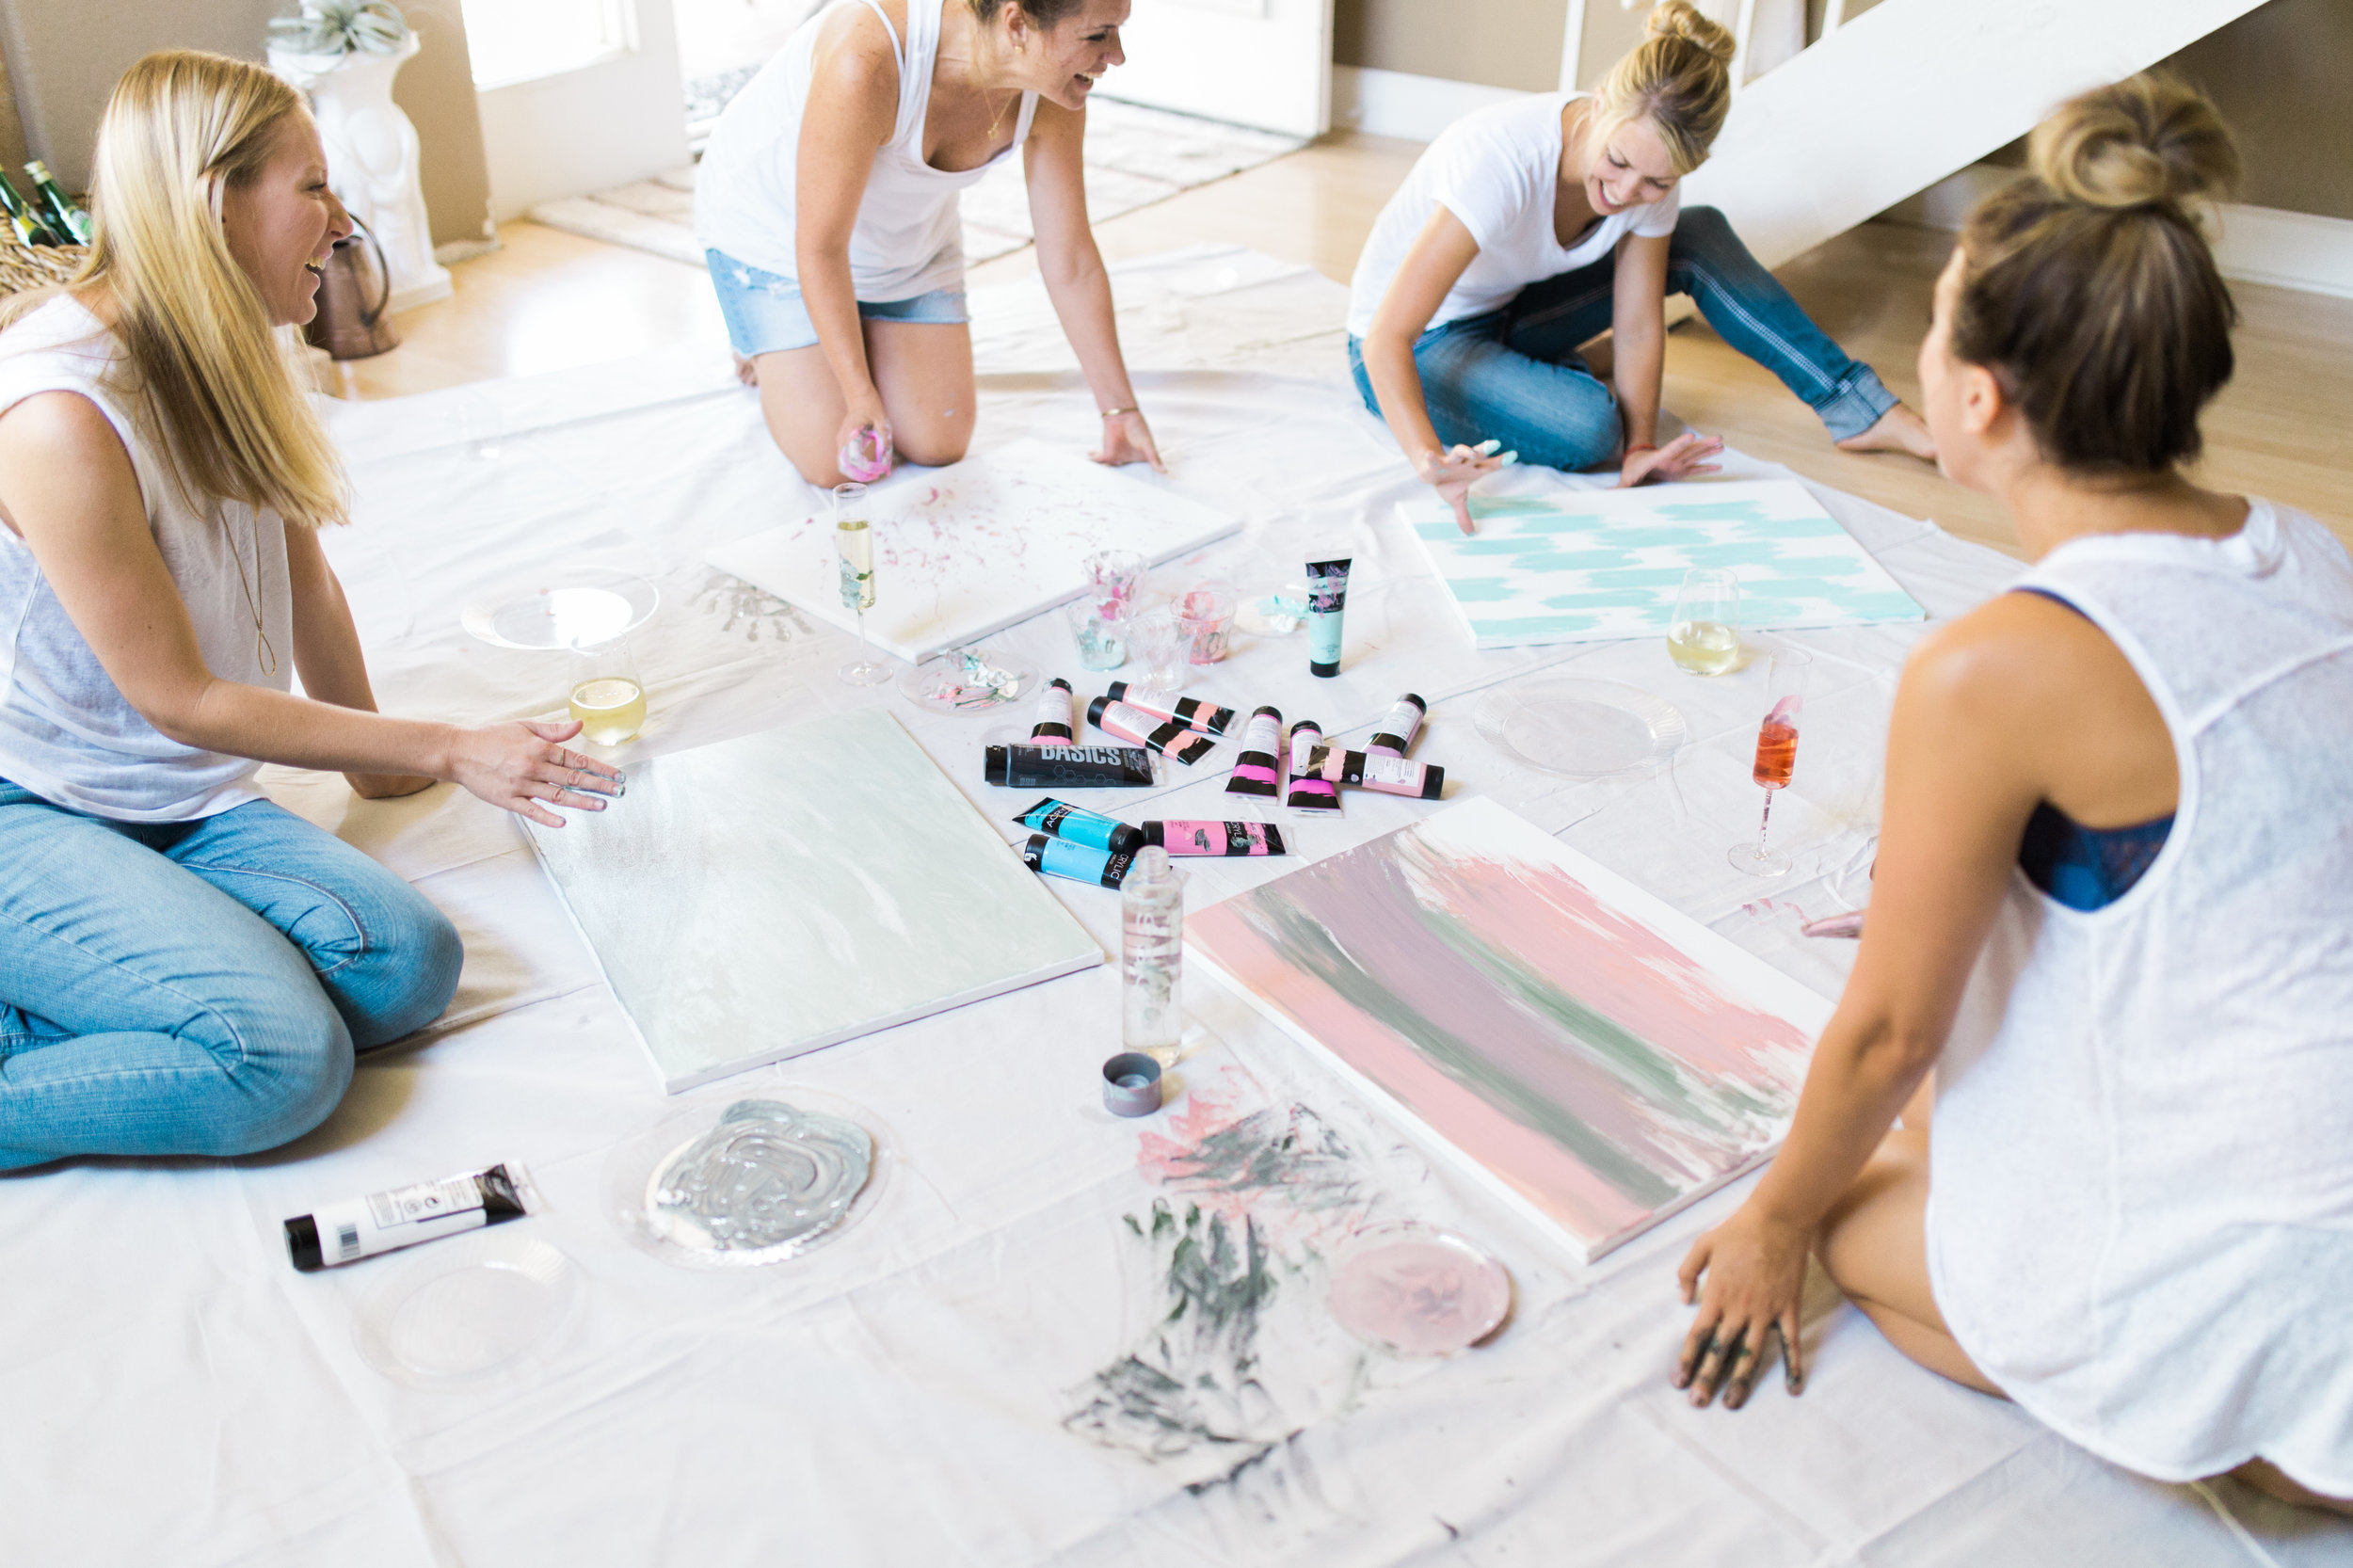 Girls night ideas that help you get creative while catching up | A Fabulous Fete